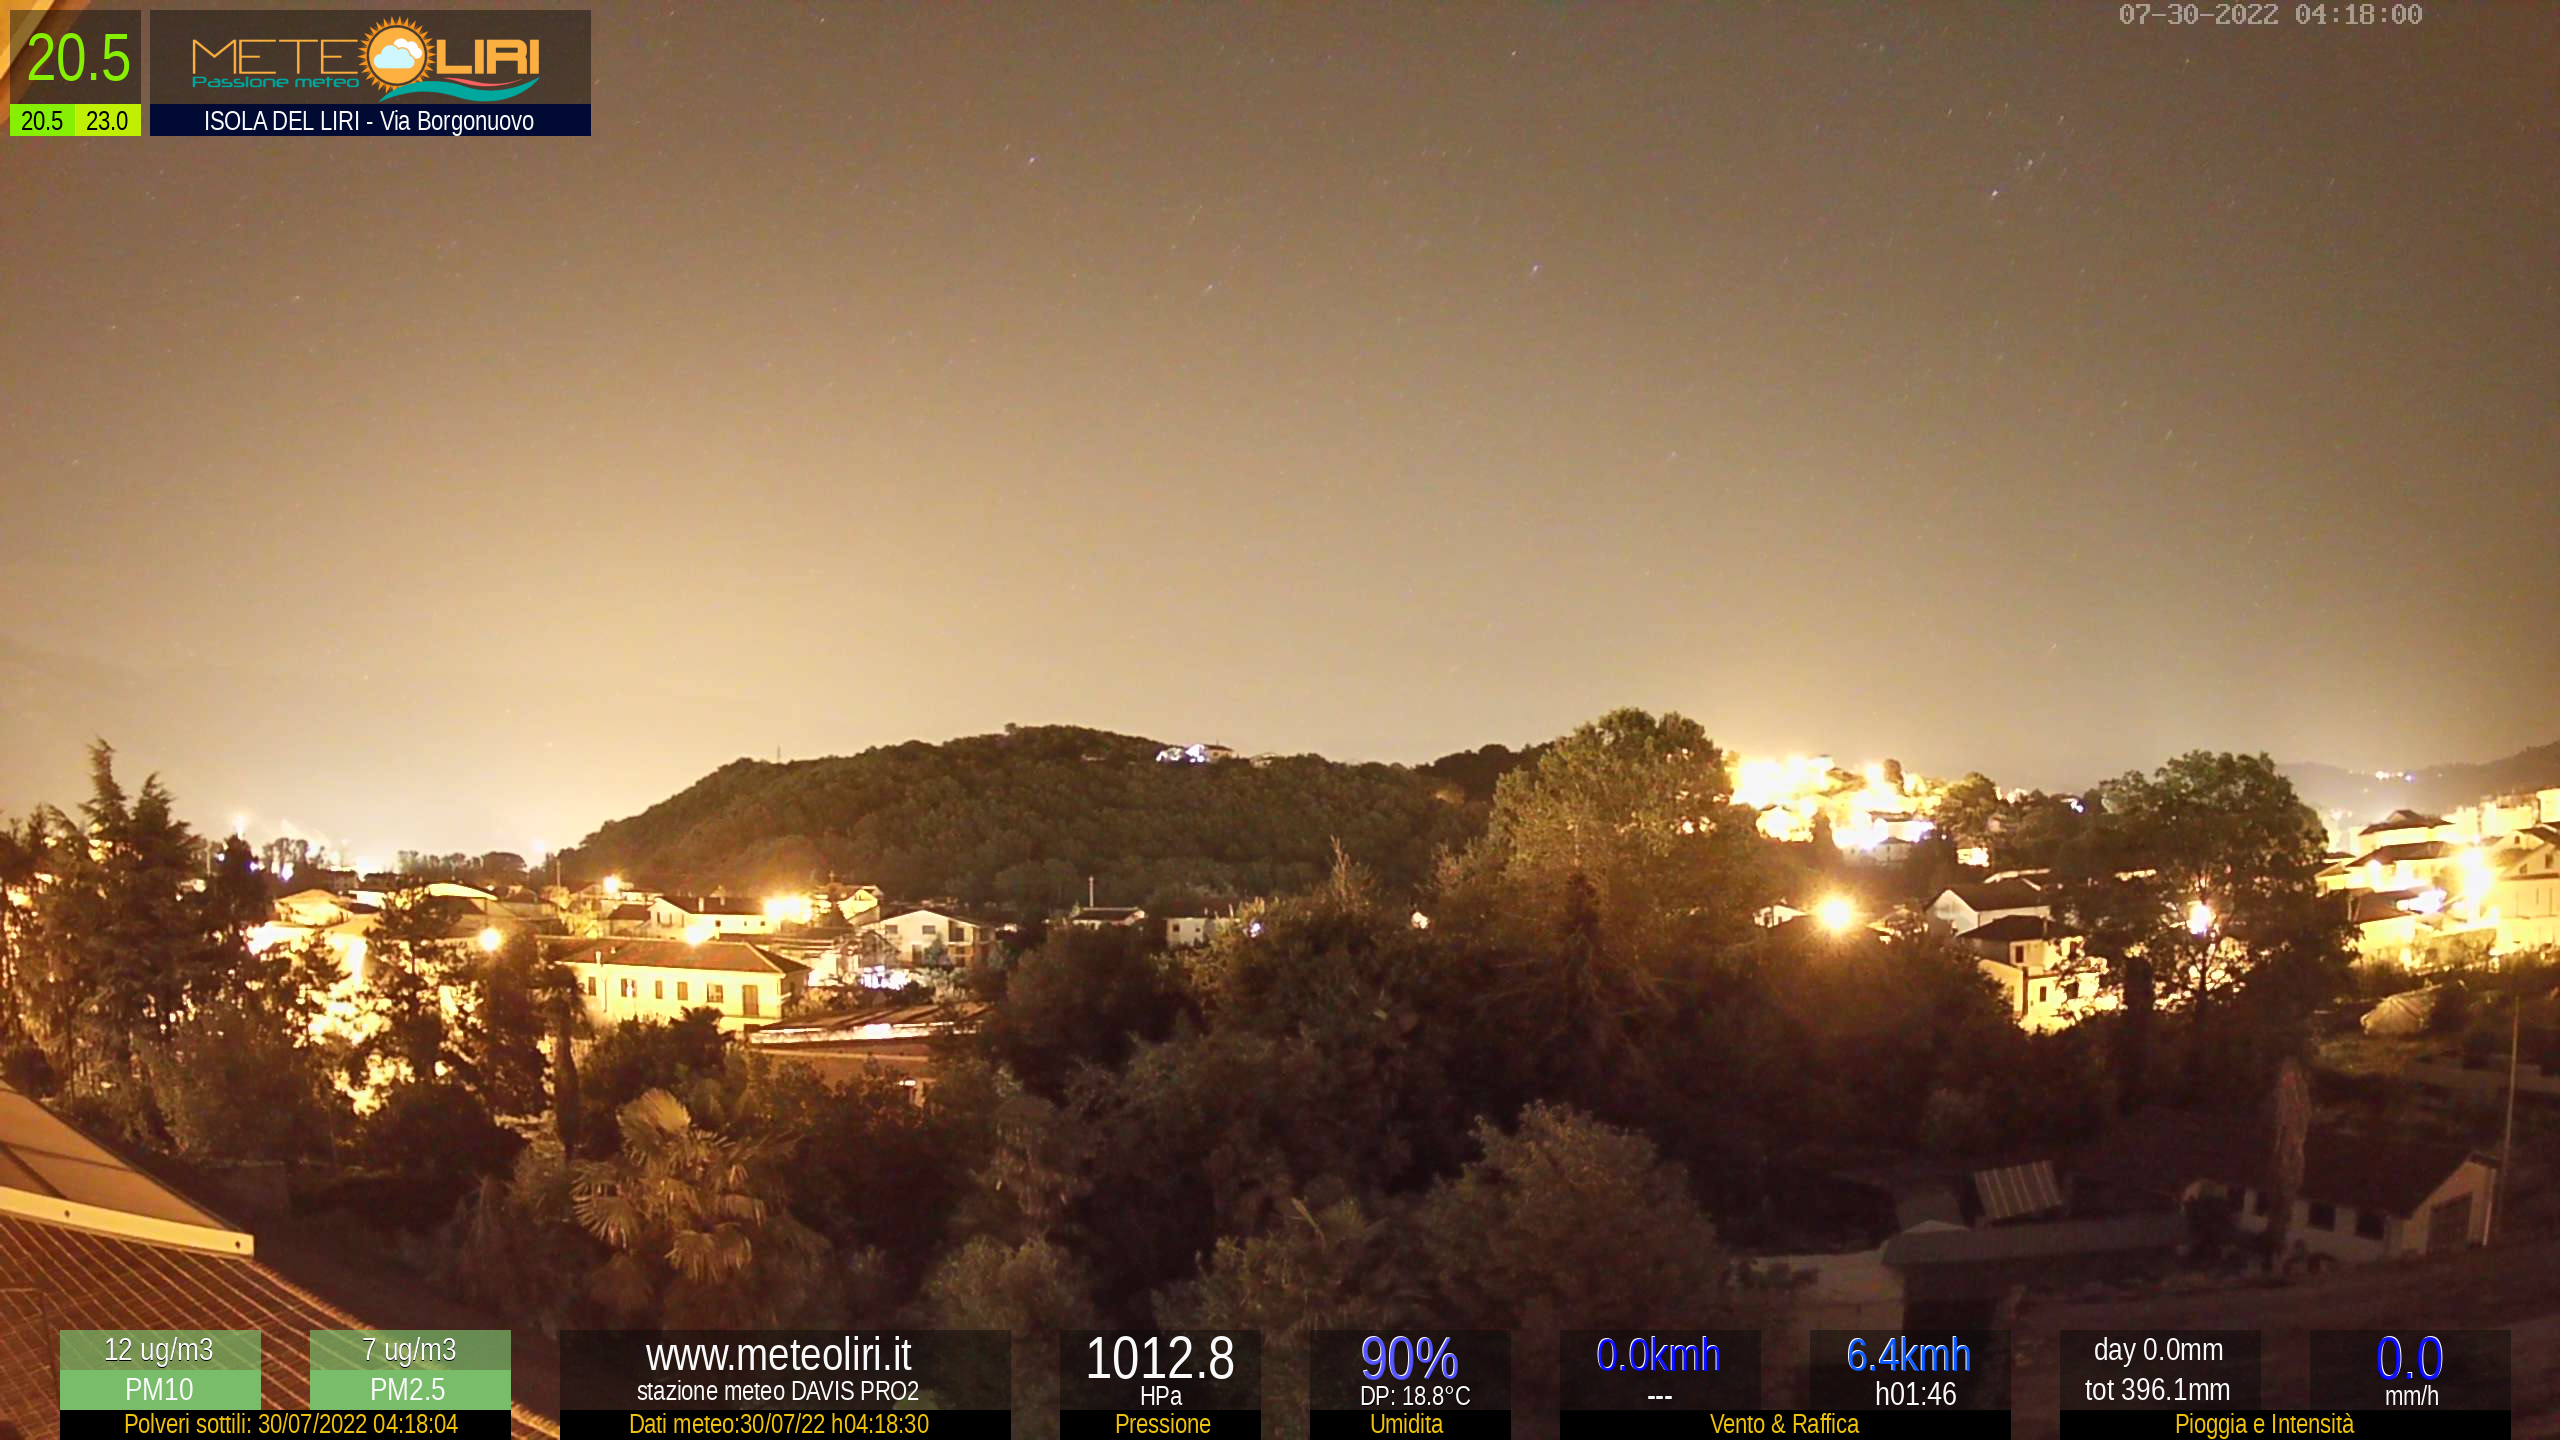 webcam meteoliri 2